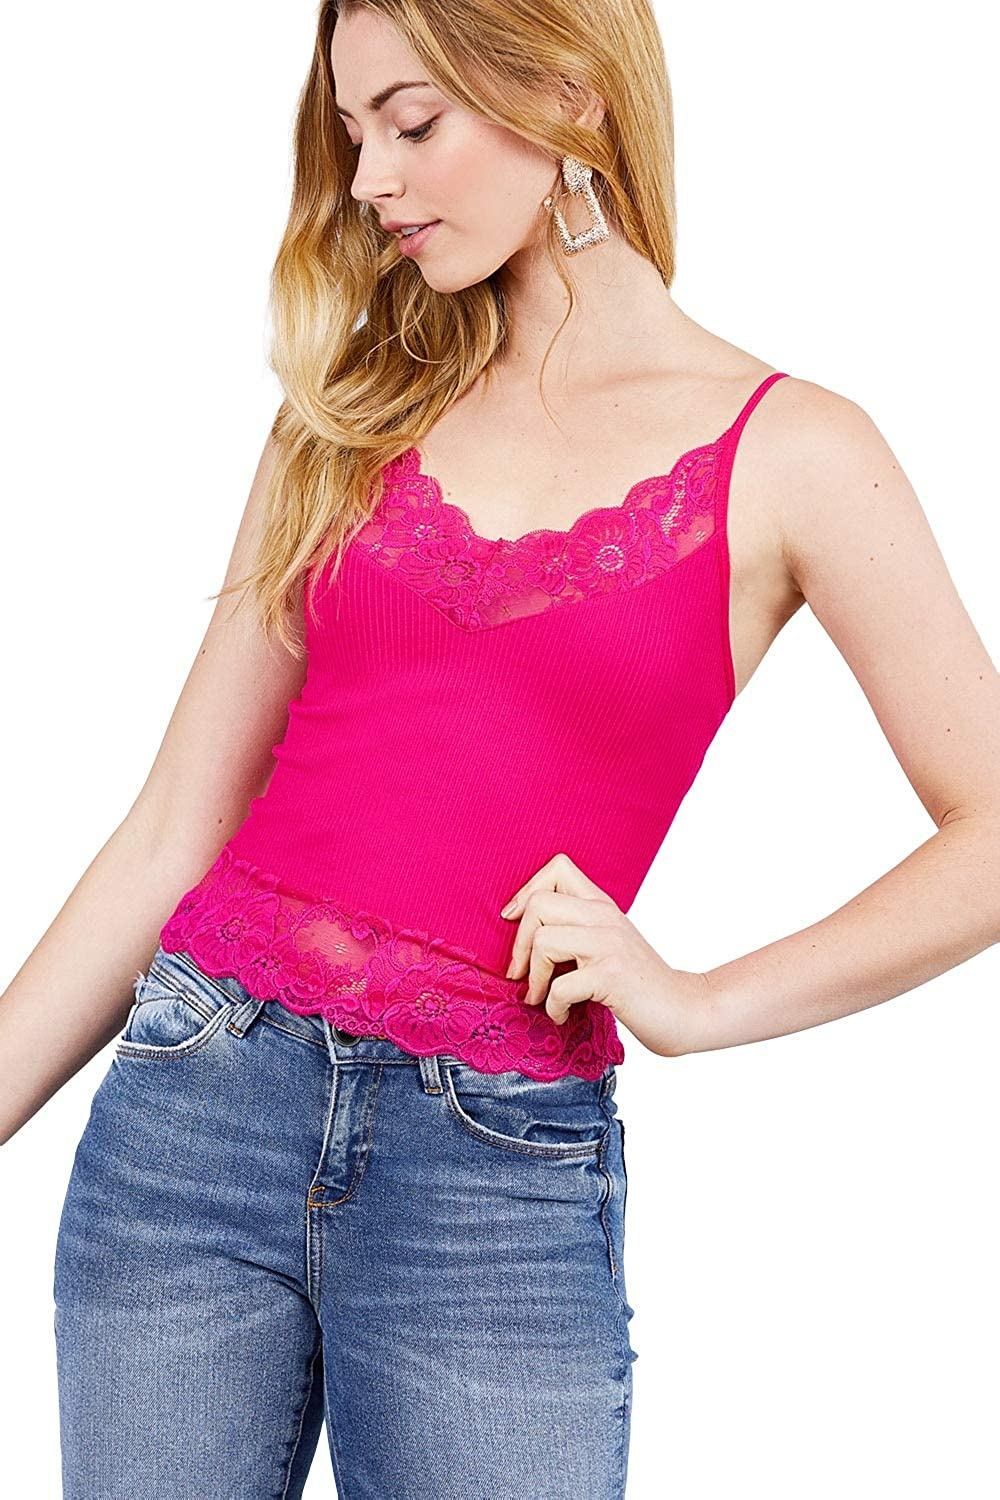 Women's V-Neck with Lace Detail Ribbed Seamless Cami Top